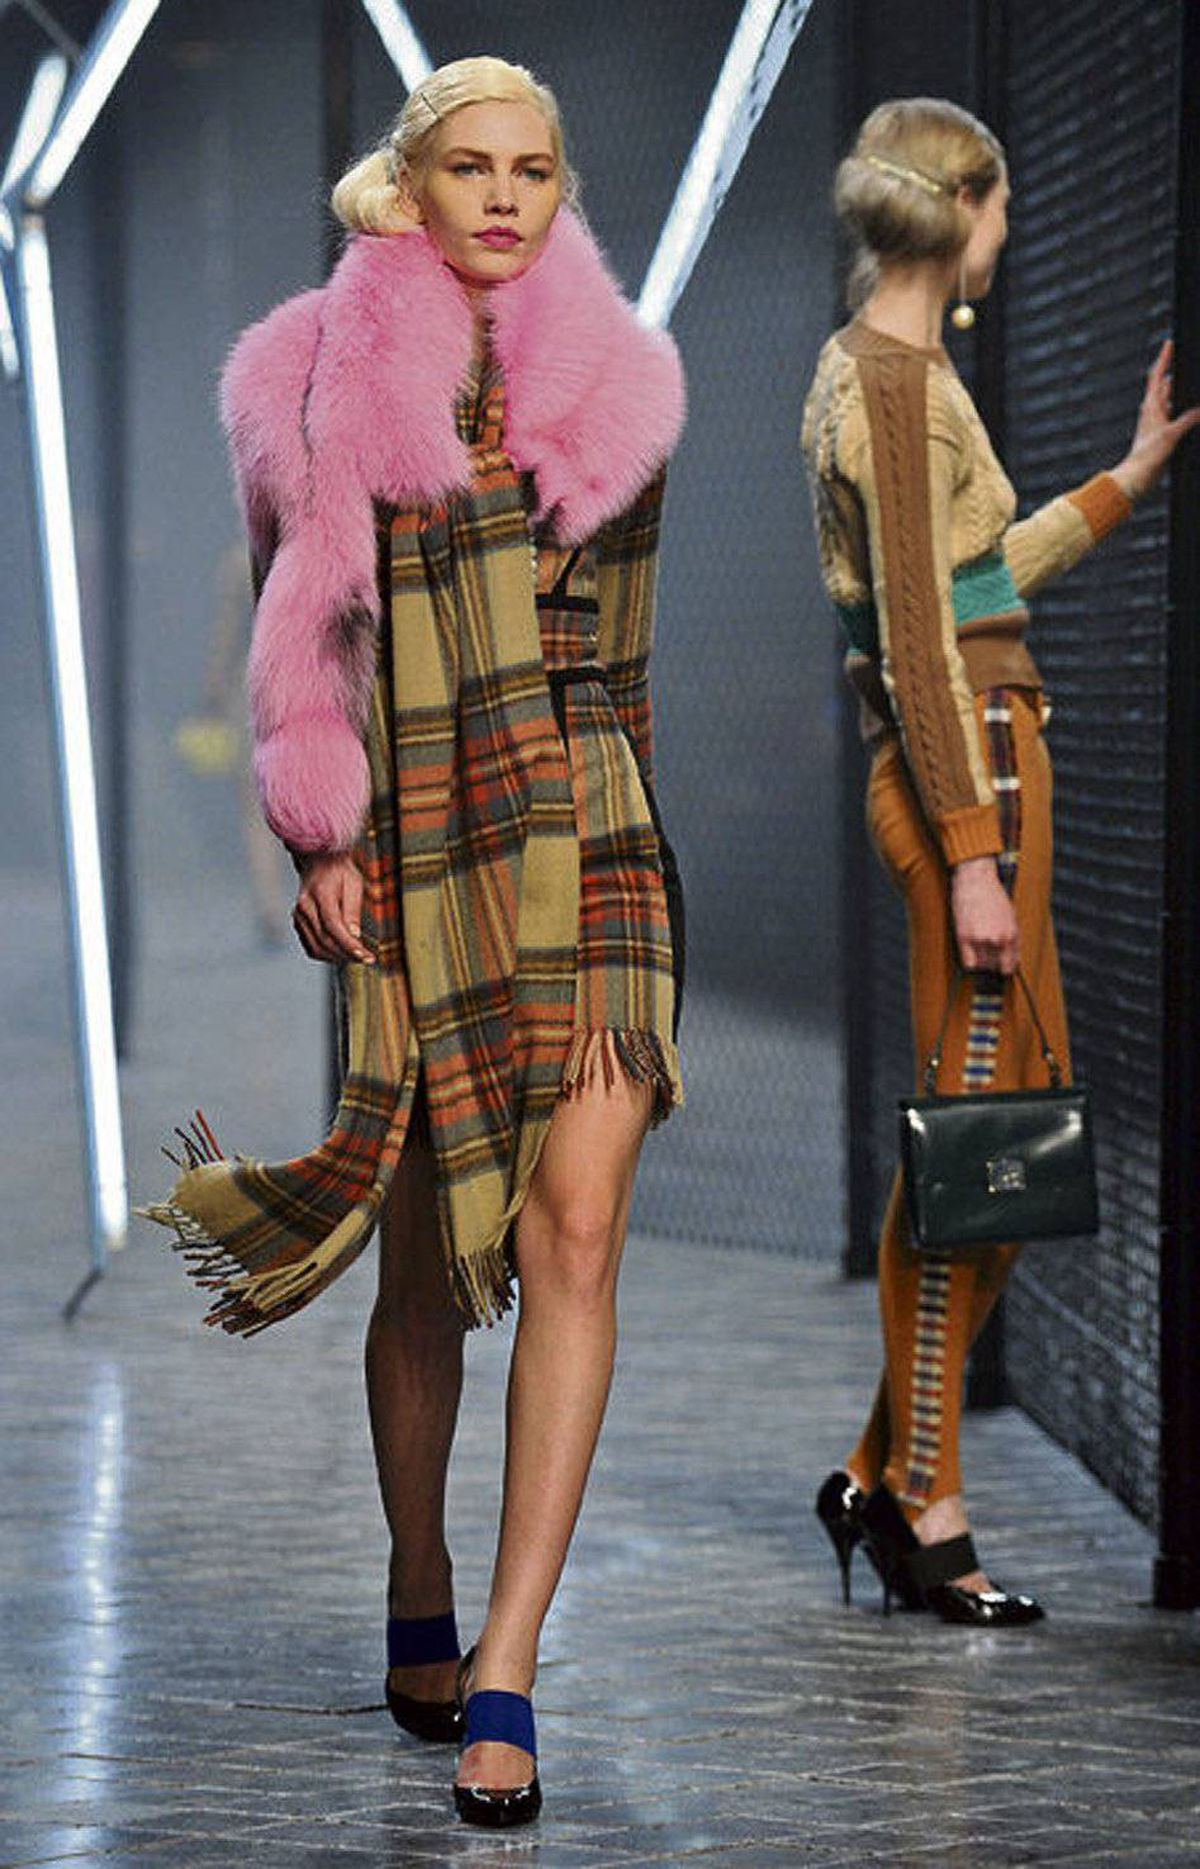 Plaid, on the runway